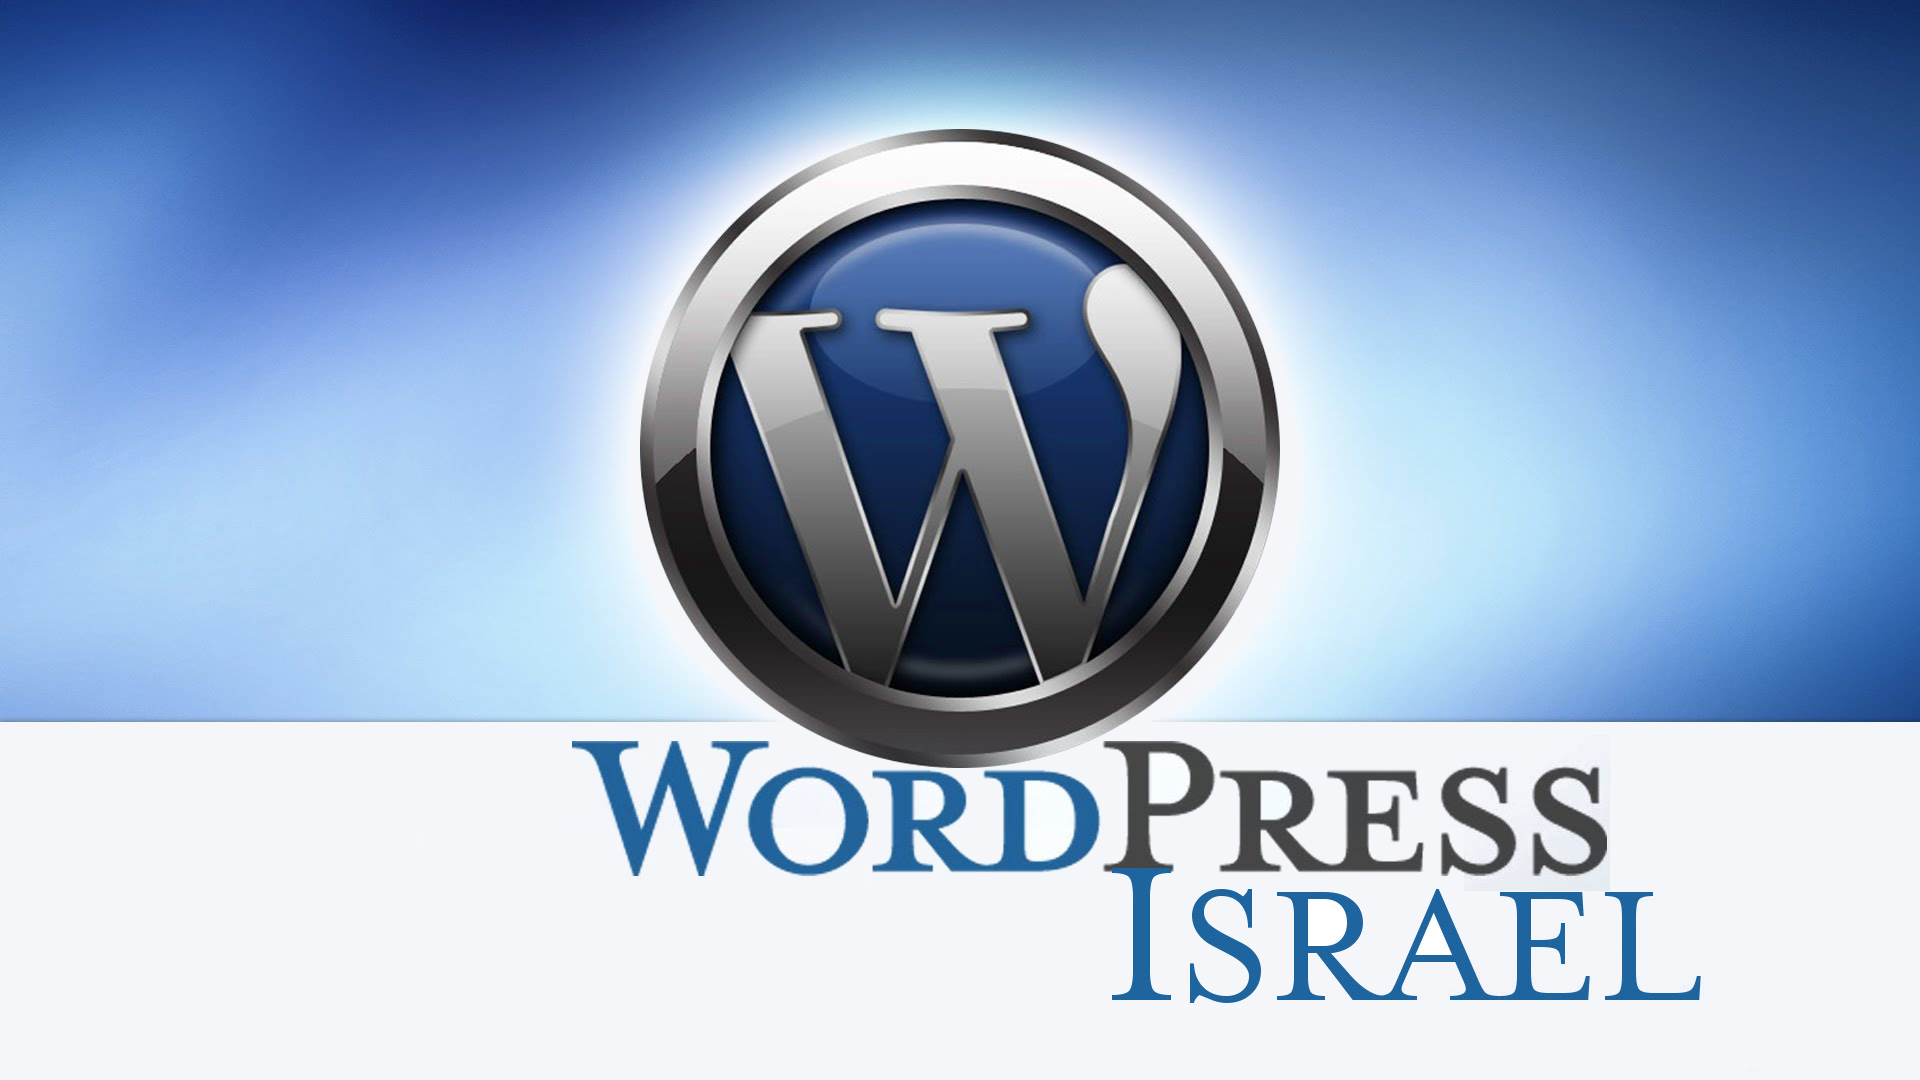 WordPress Israel